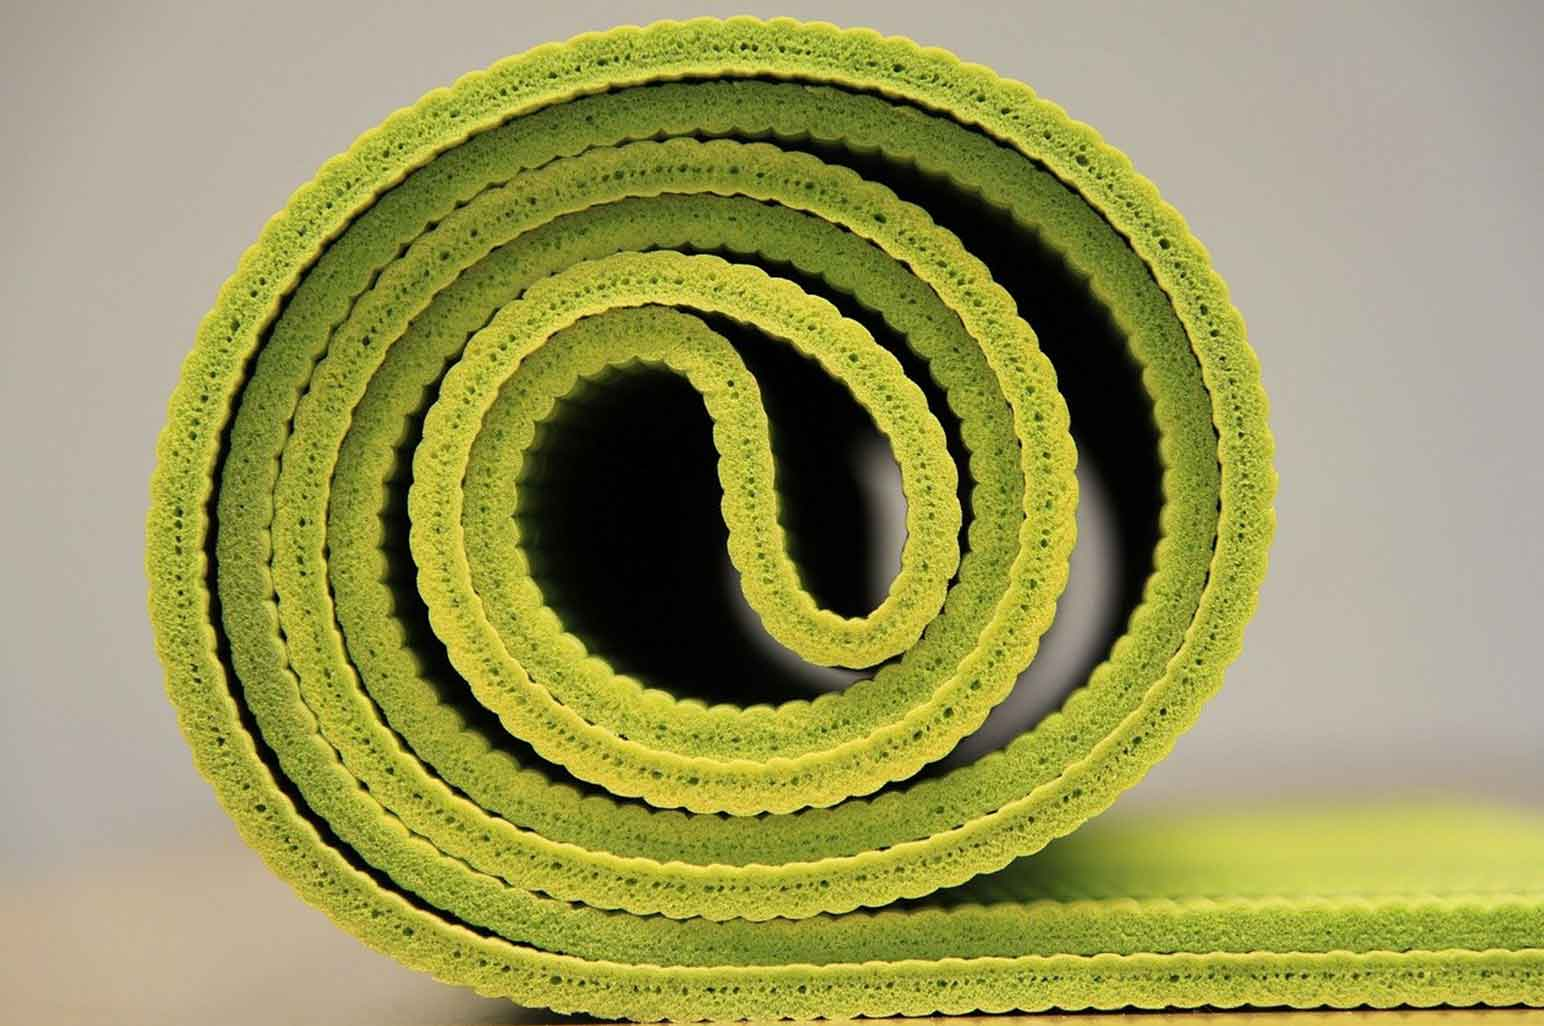 What Makes an Excellent Yoga Mat